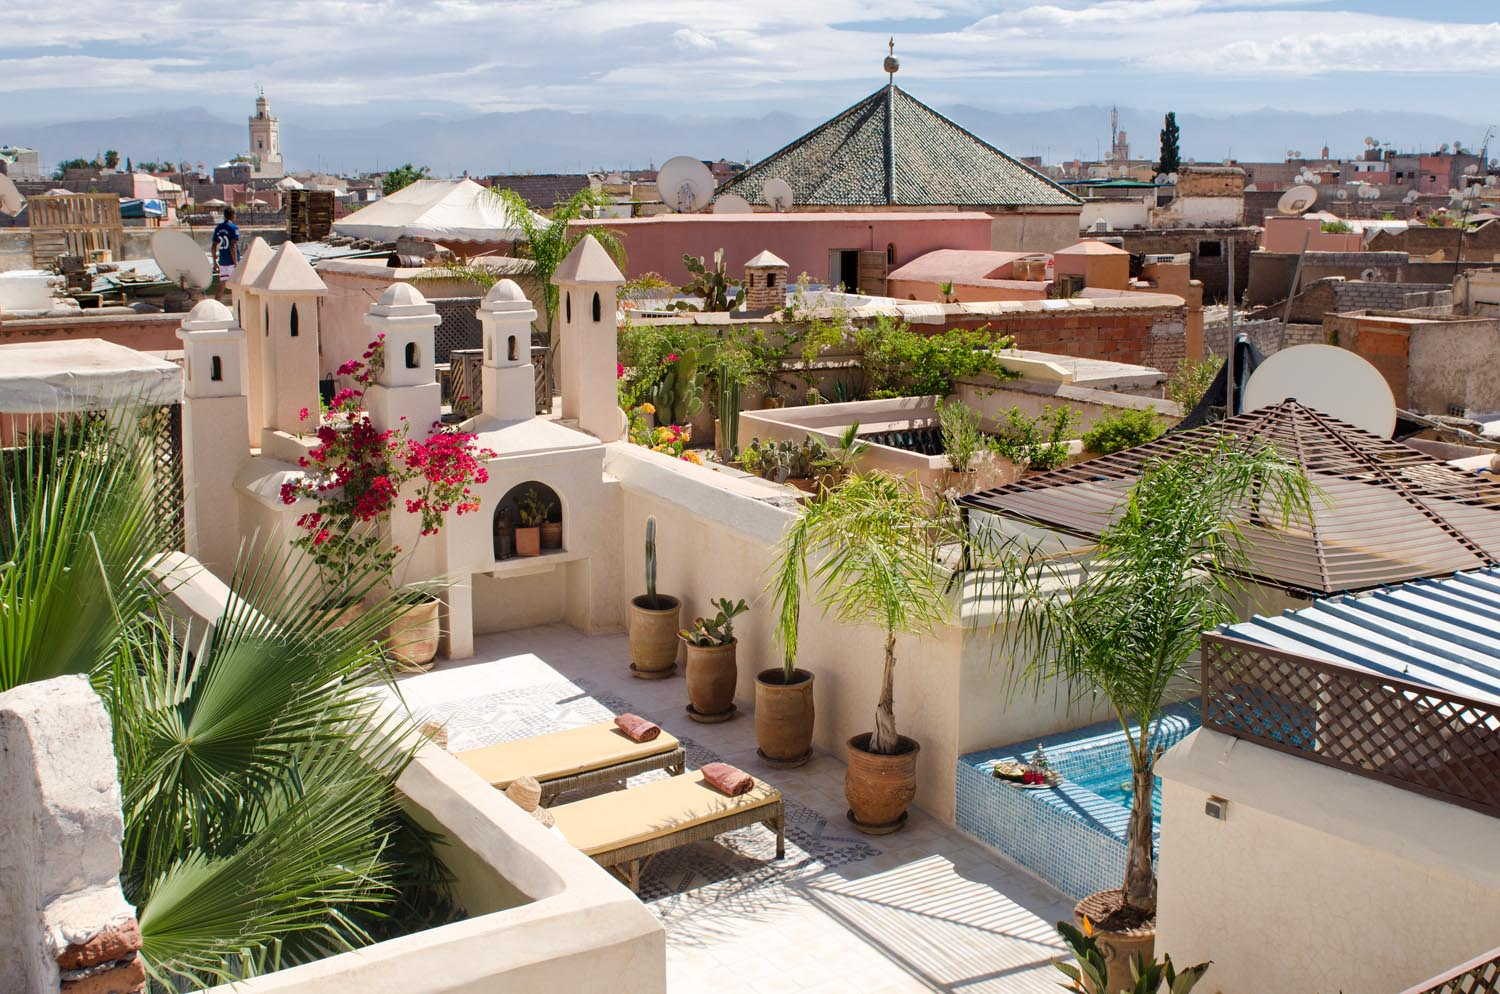 Riad vert luxury riad in marrakech morocco book riad for Best riads in marrakesh